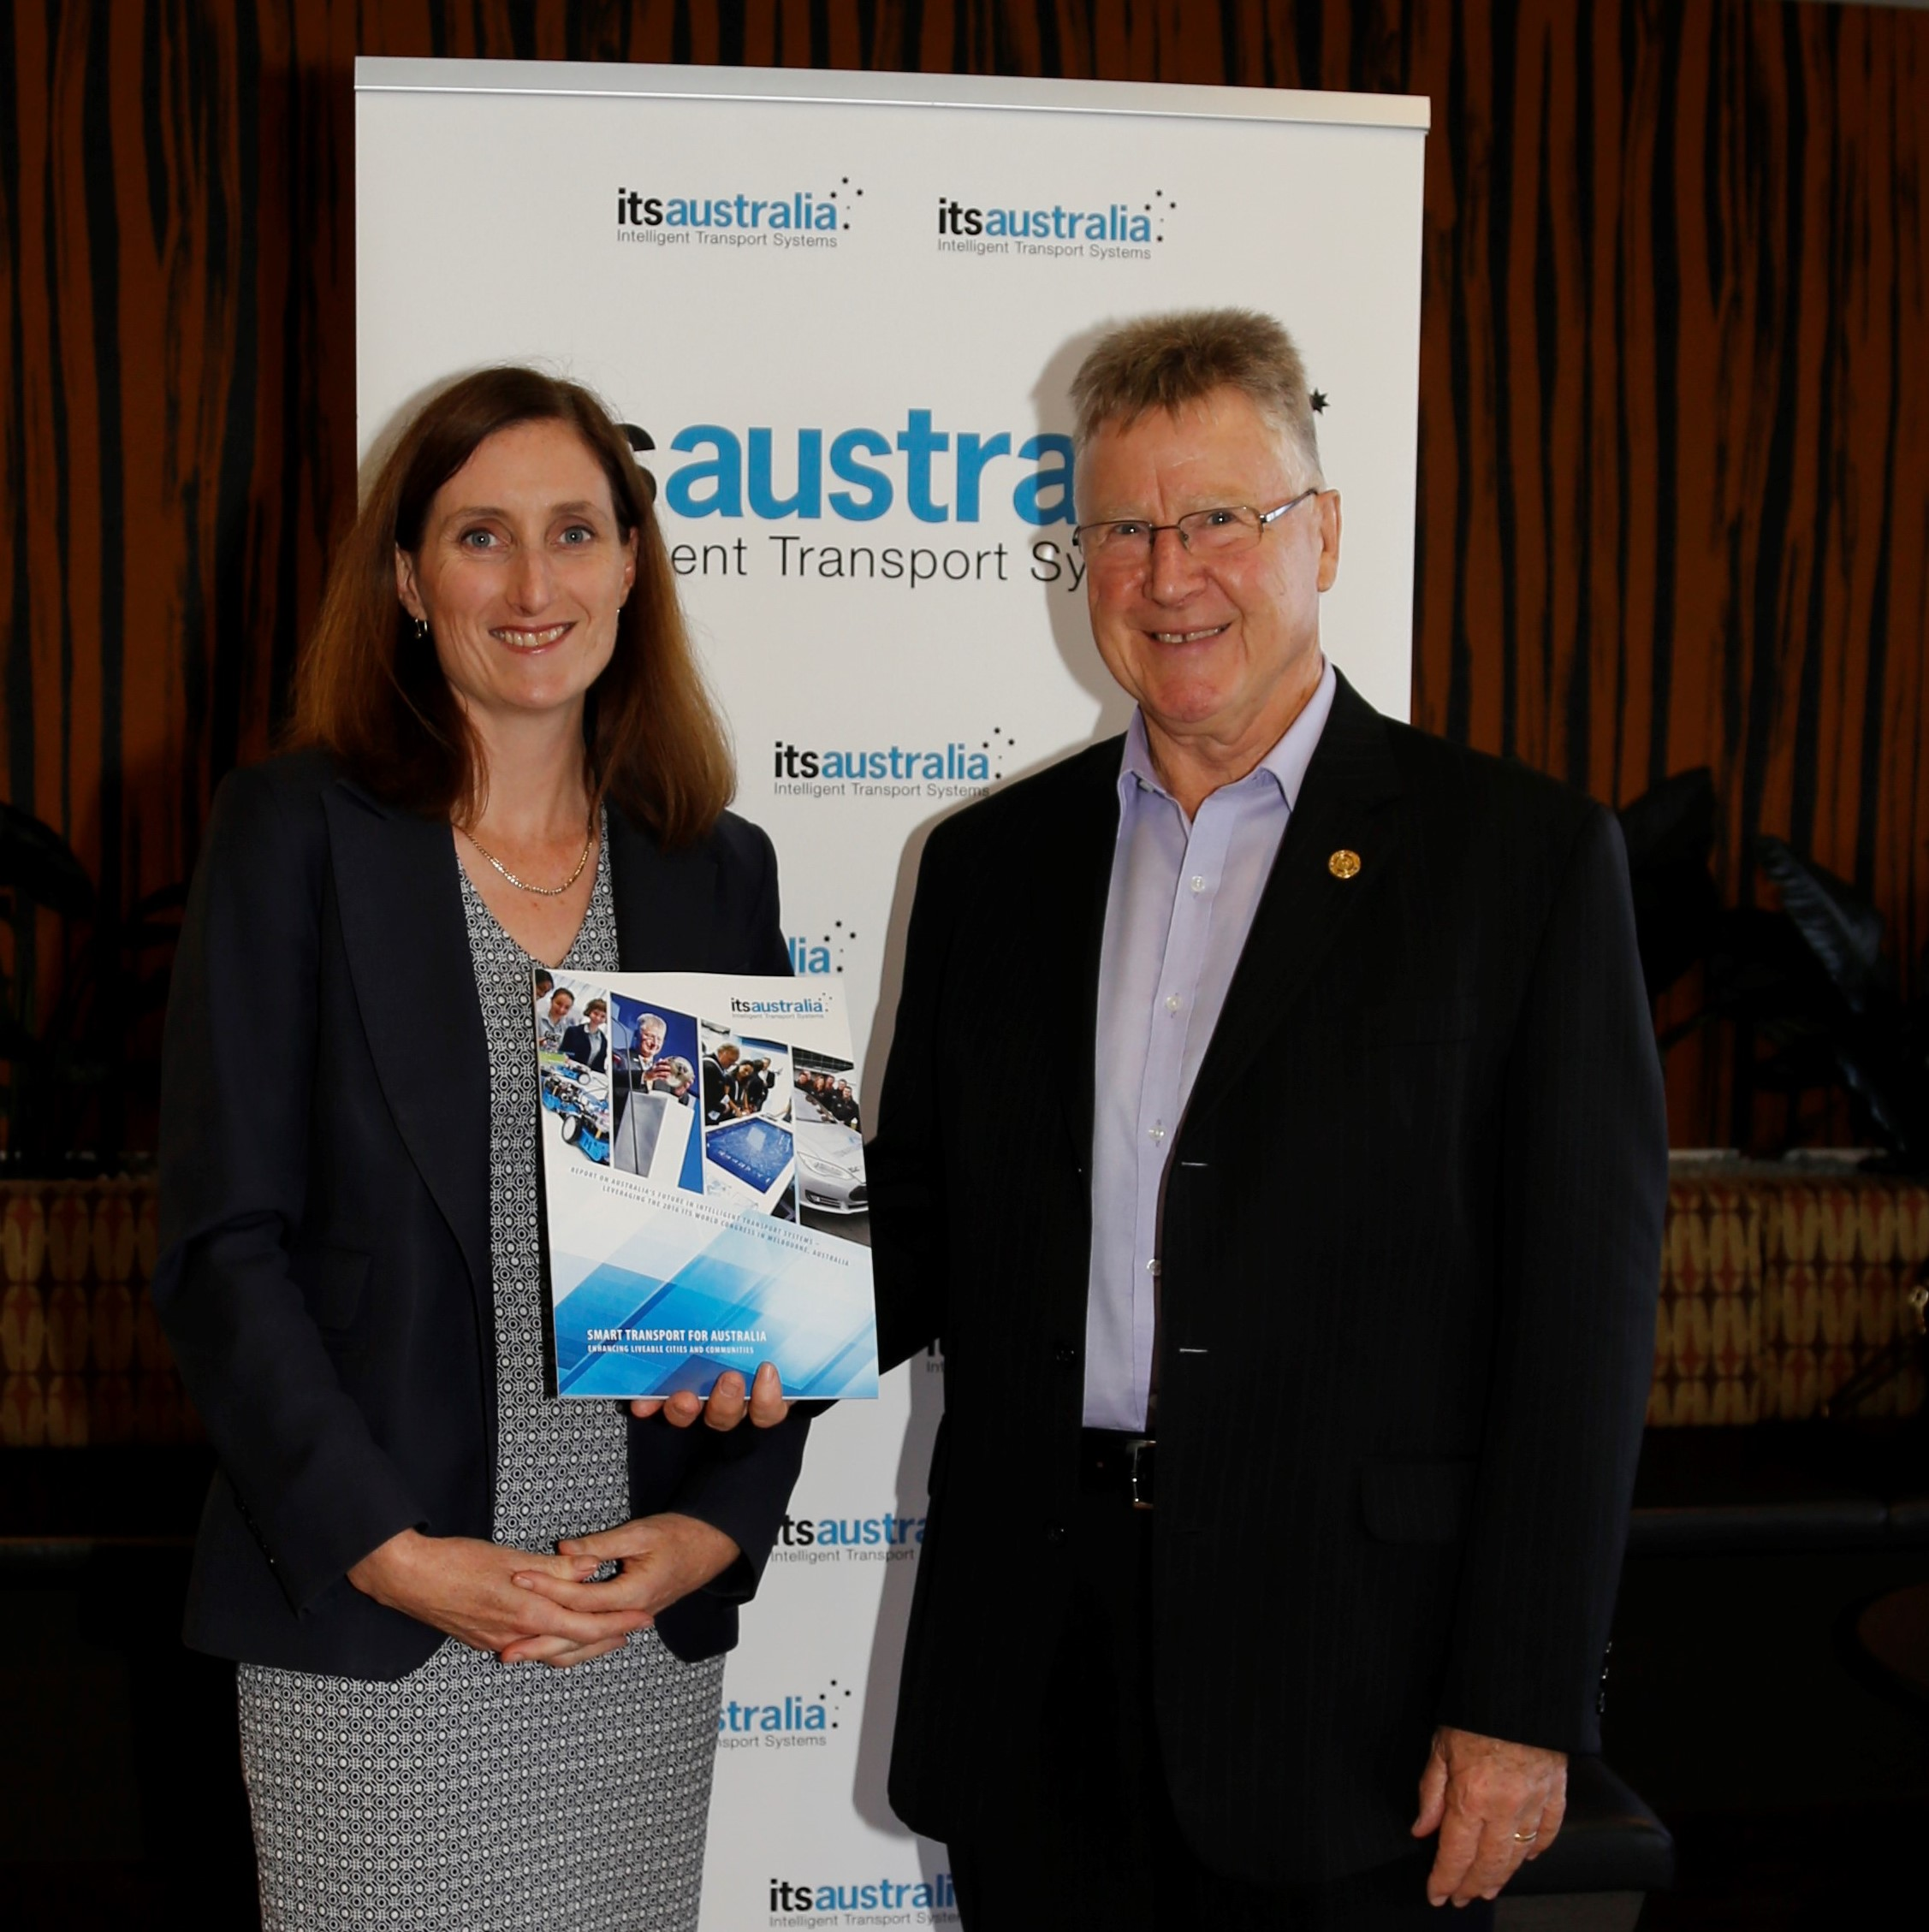 Smart Transport for Australia – identifying opportunities for Australia's transport technology industry